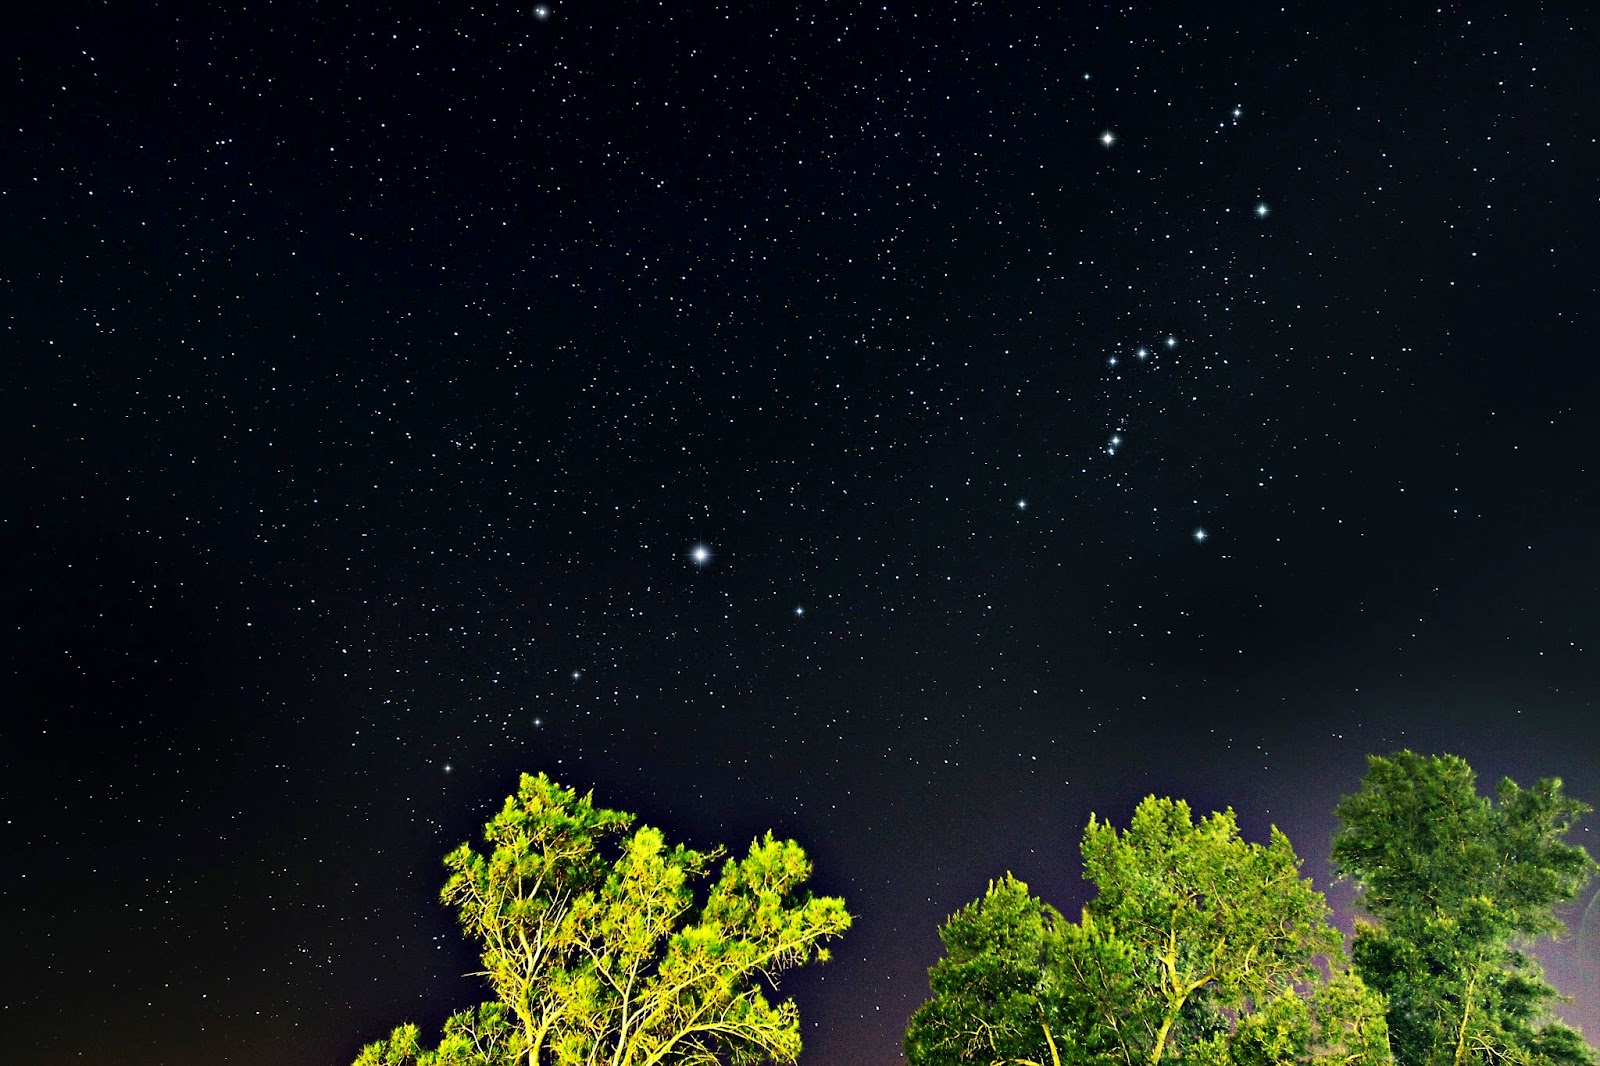 Kfar Szold Israel  City new picture : ... Constellation Orion Israel astrophotography from Kfar Szold Kibbutz